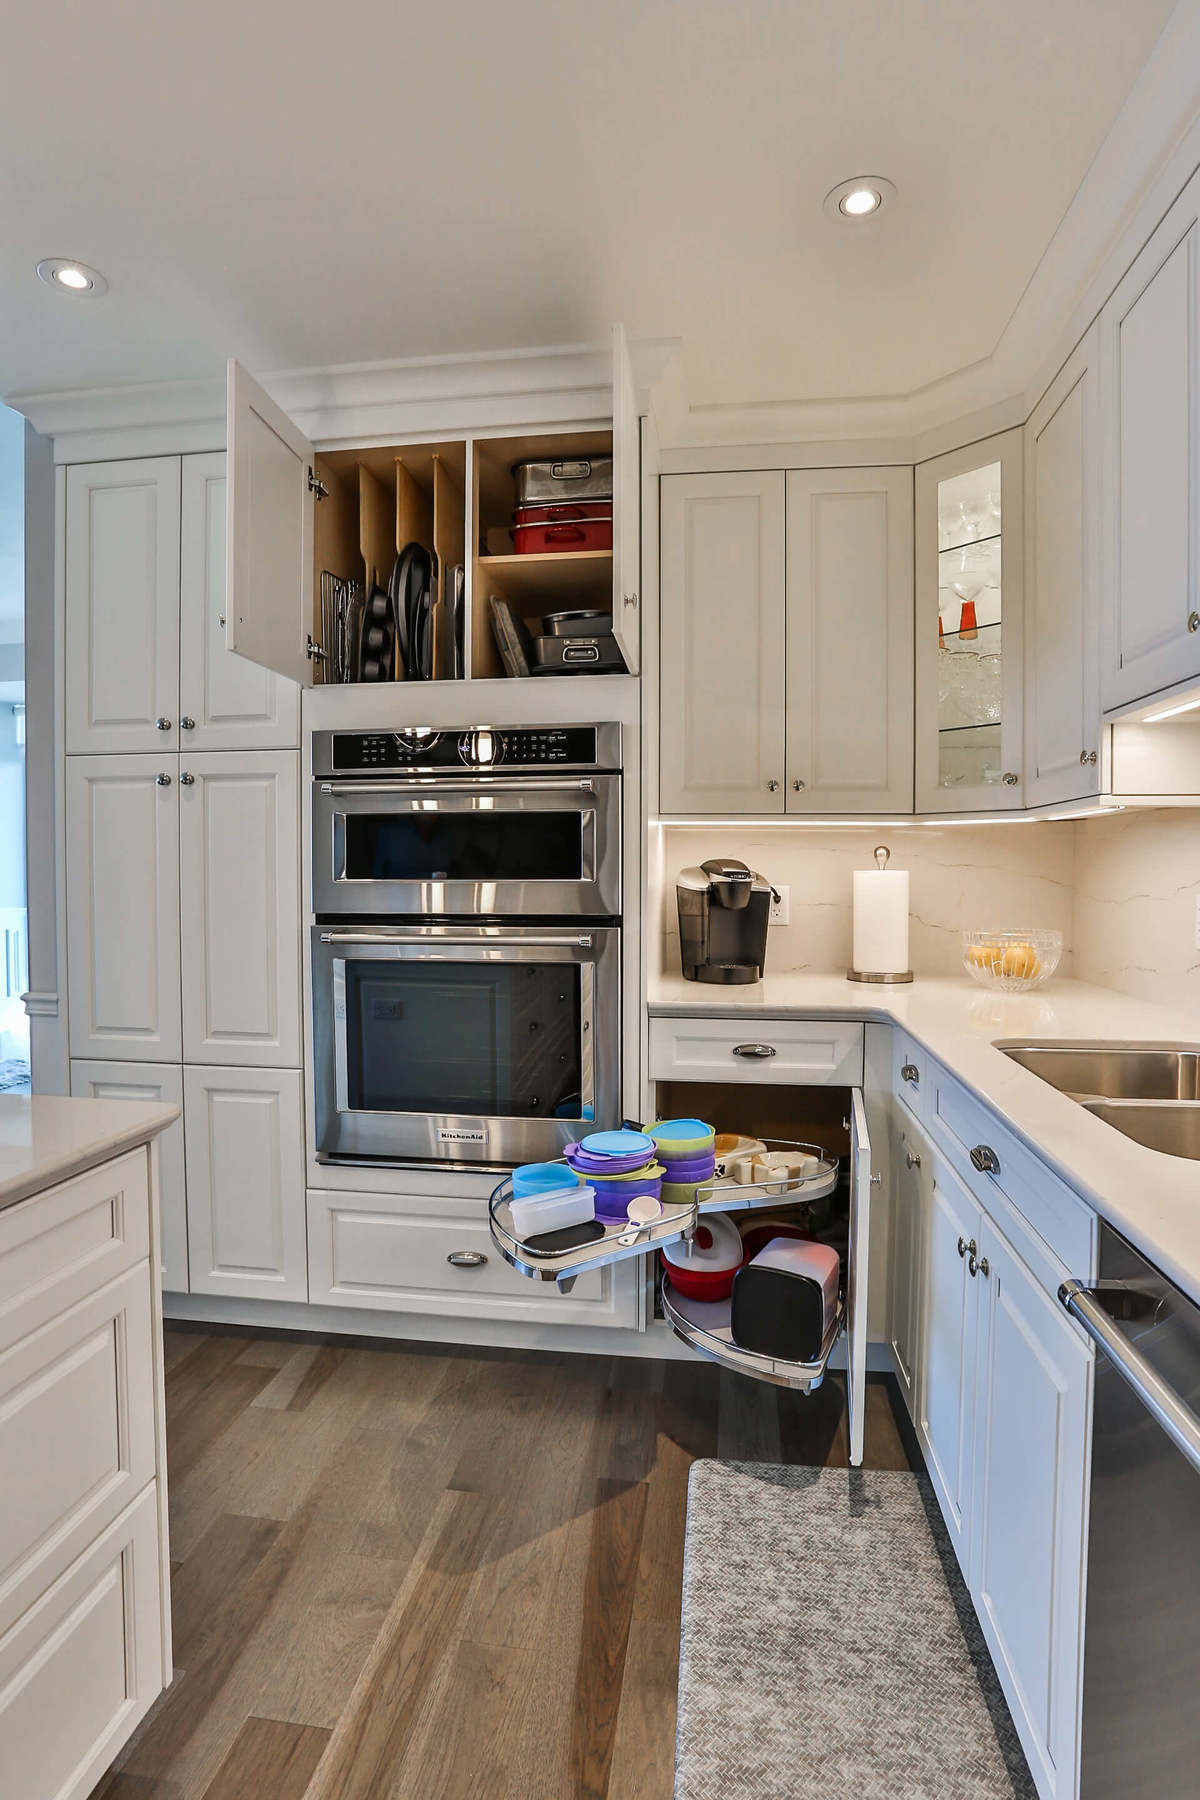 White kitchen design with white cupboards, stainless steel appliances, hardwood floors, and a generous storage.